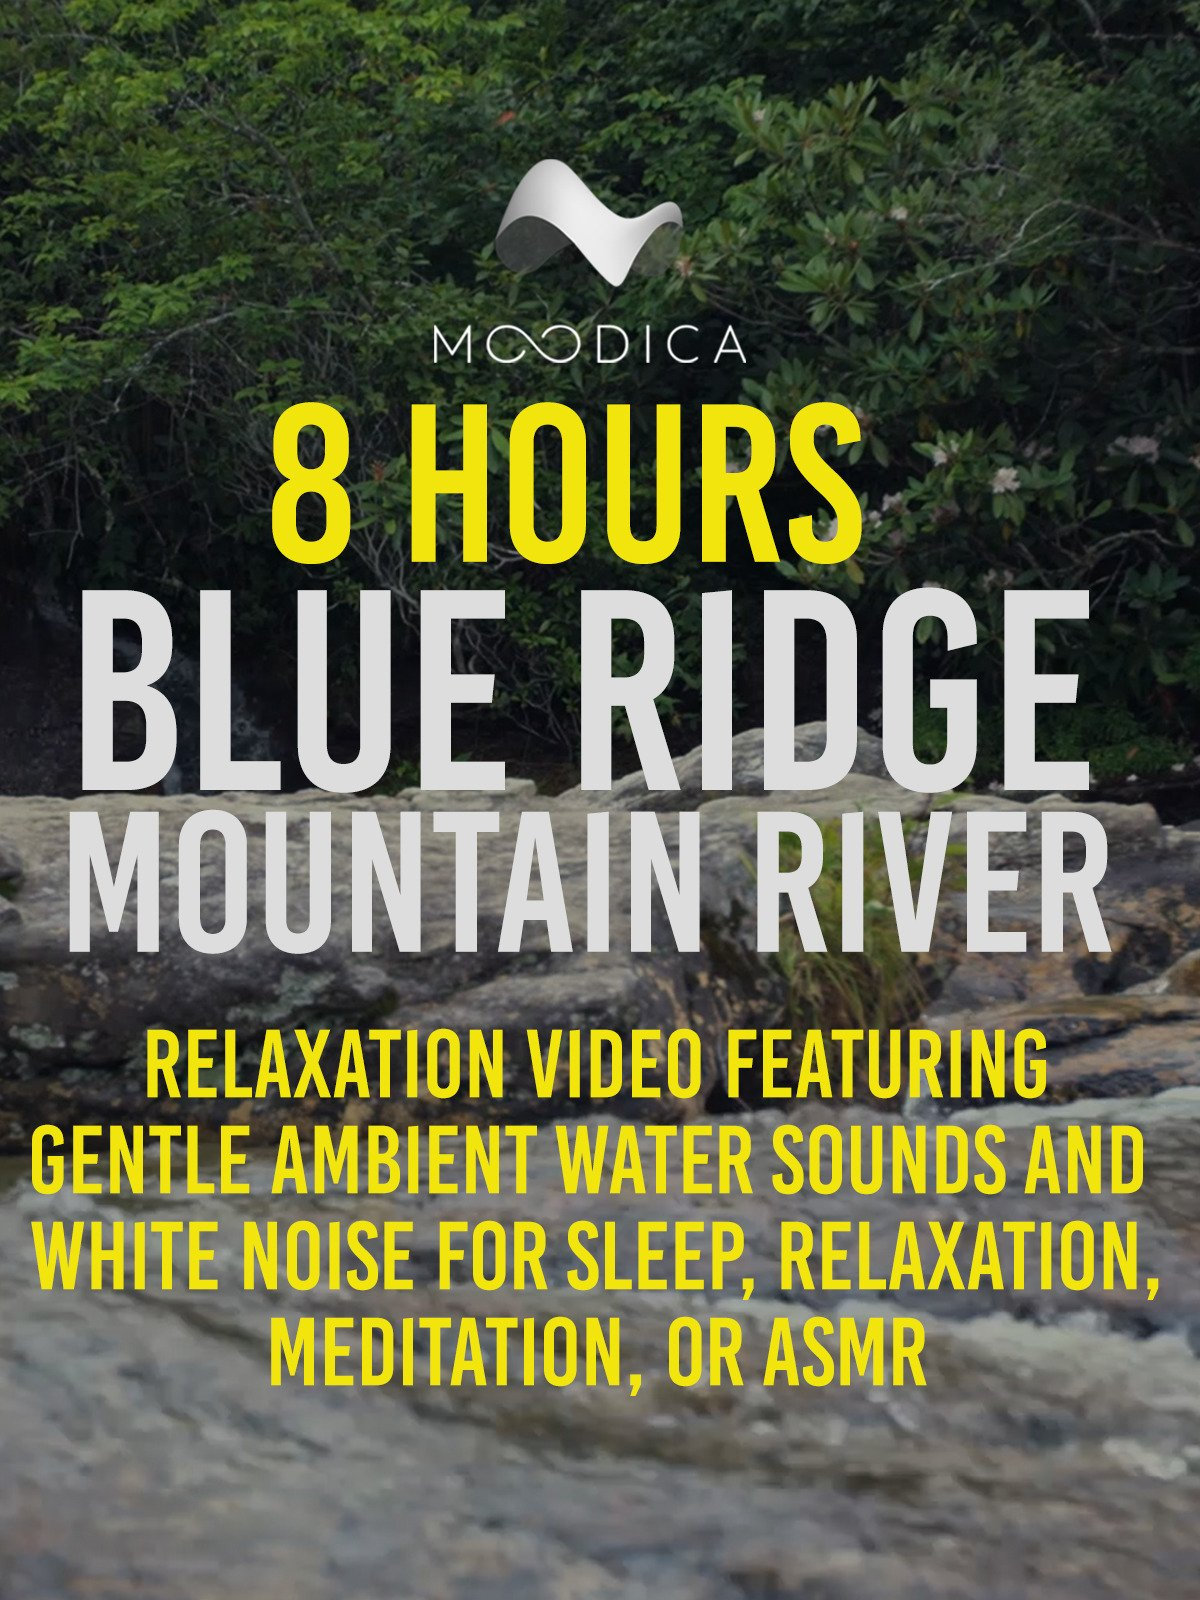 8 Hours: Blue Ridge Mountain River: Relaxation Video Featuring Gentle Ambient Water Sounds and White Noise For Sleep, Relaxation, Meditation or ASMR